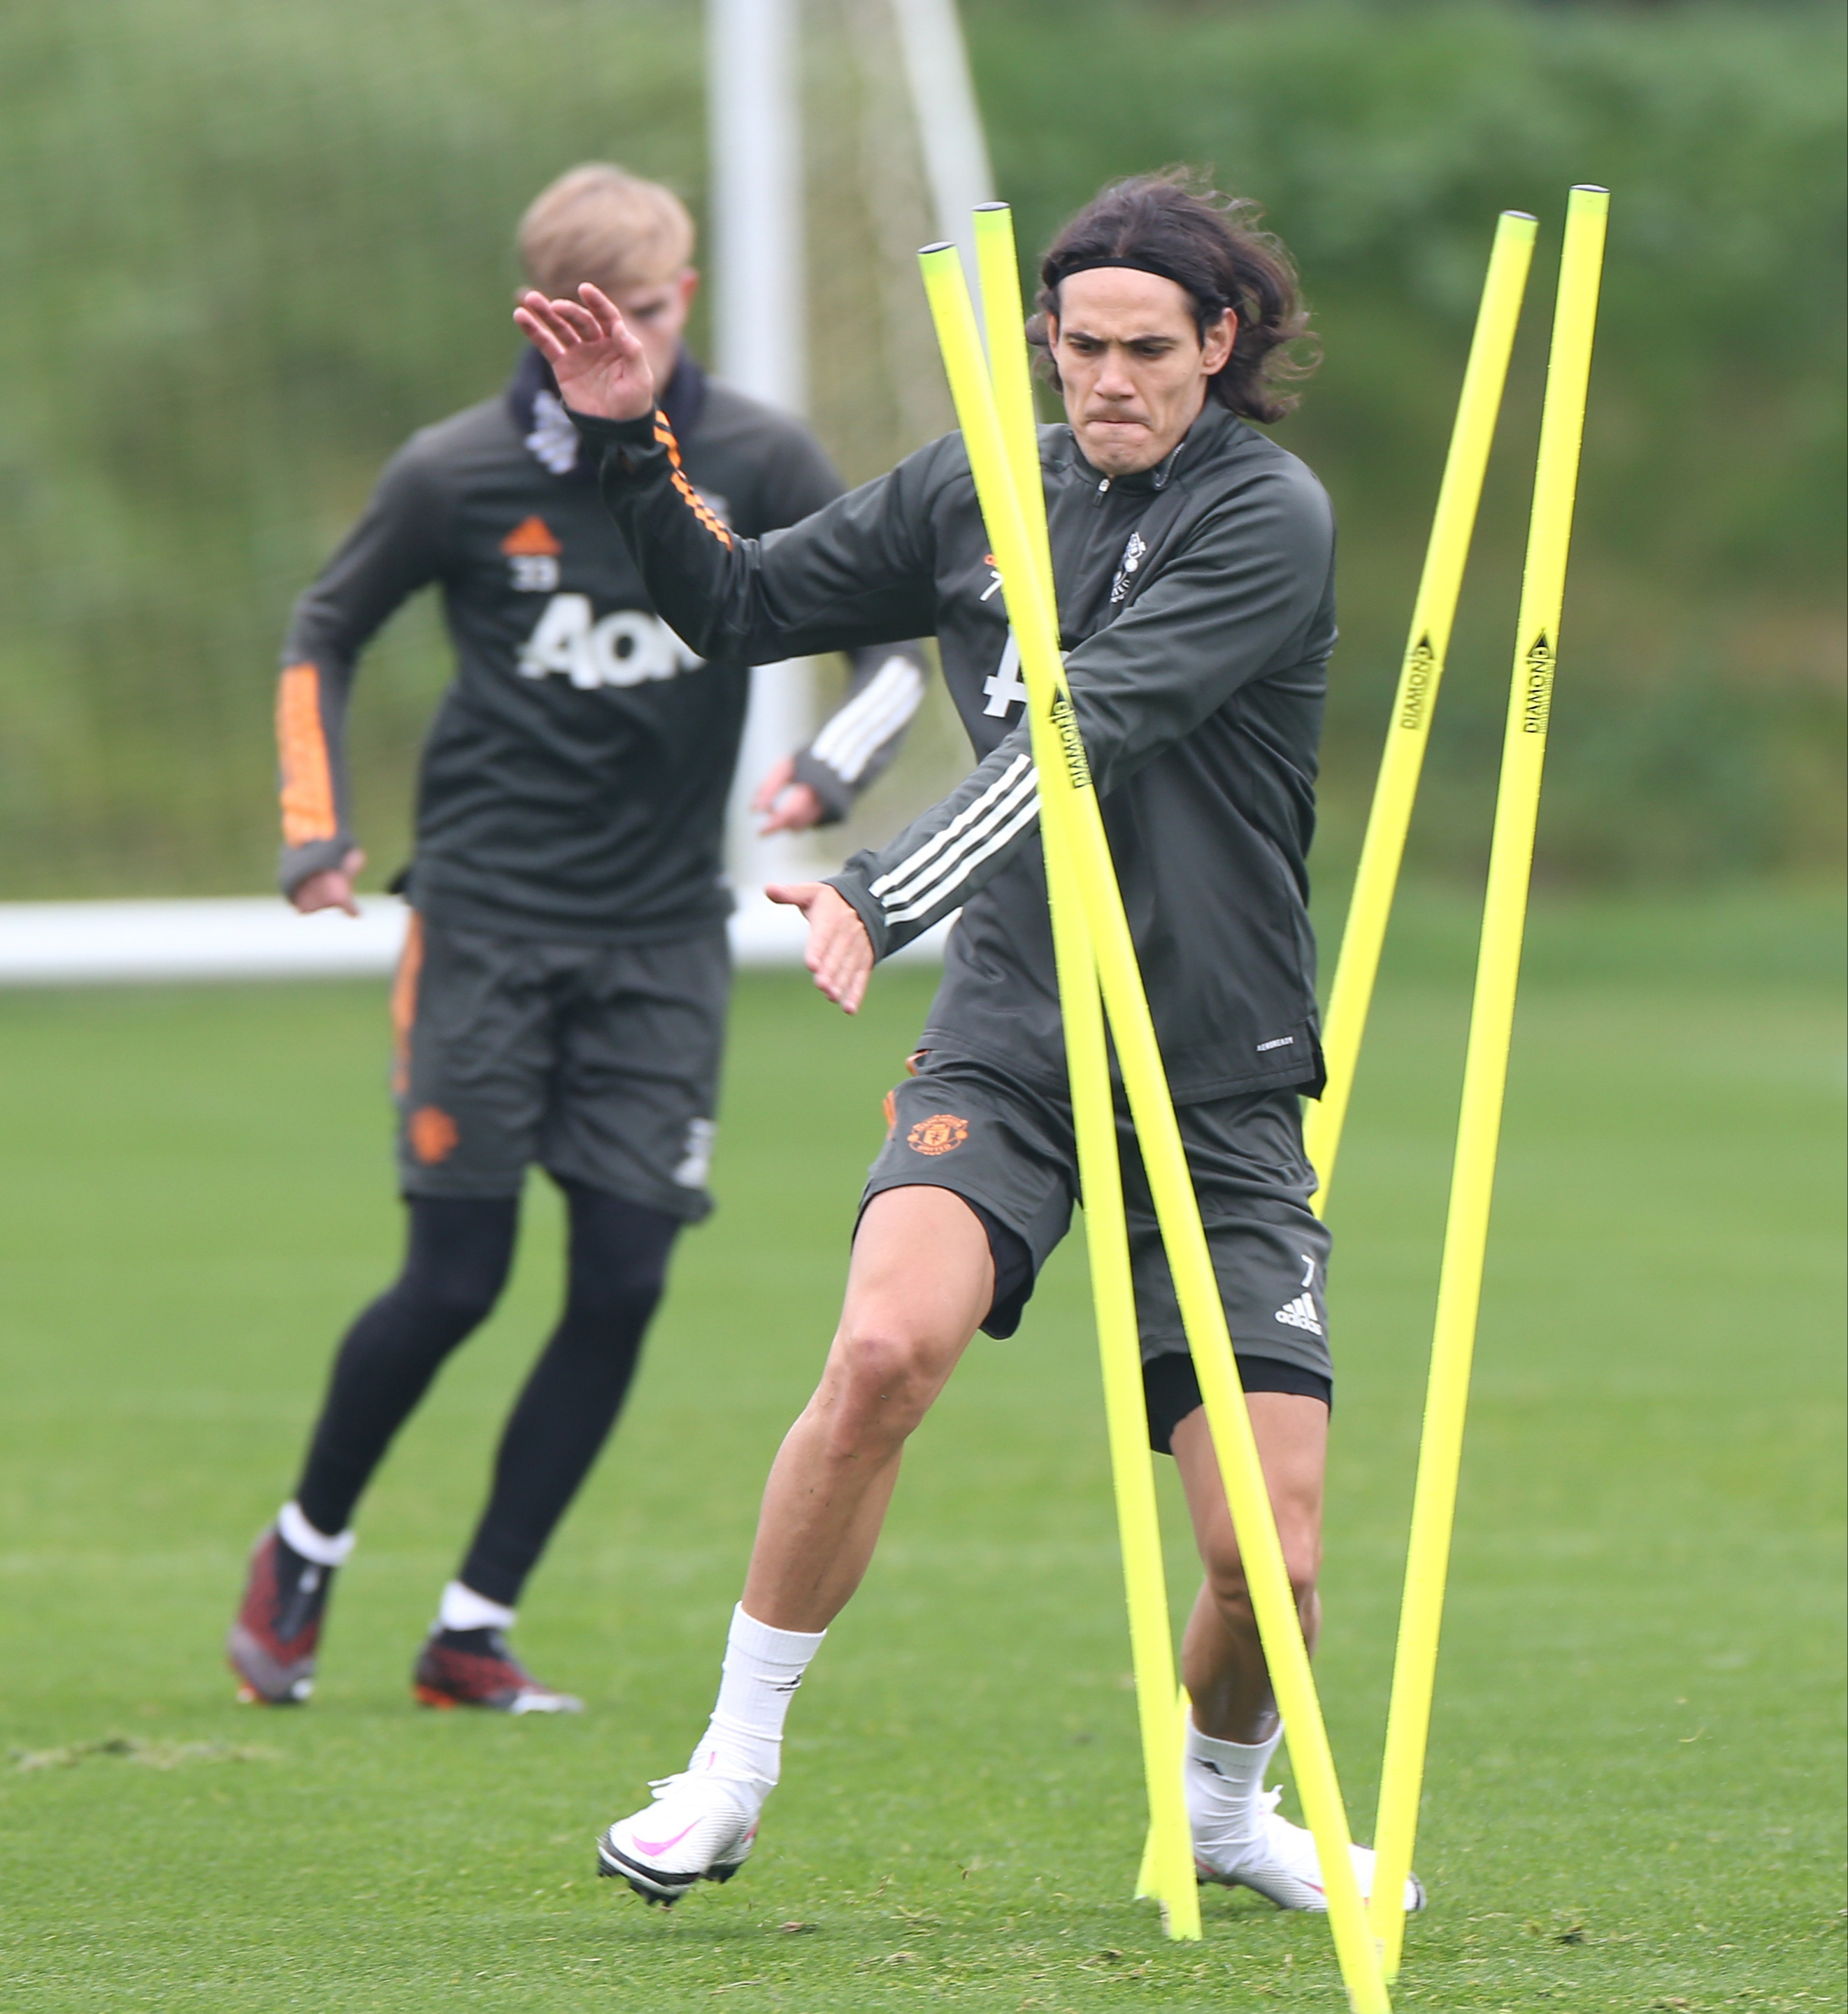 Edinson Cavani was pictured training with Manchester United for the first time